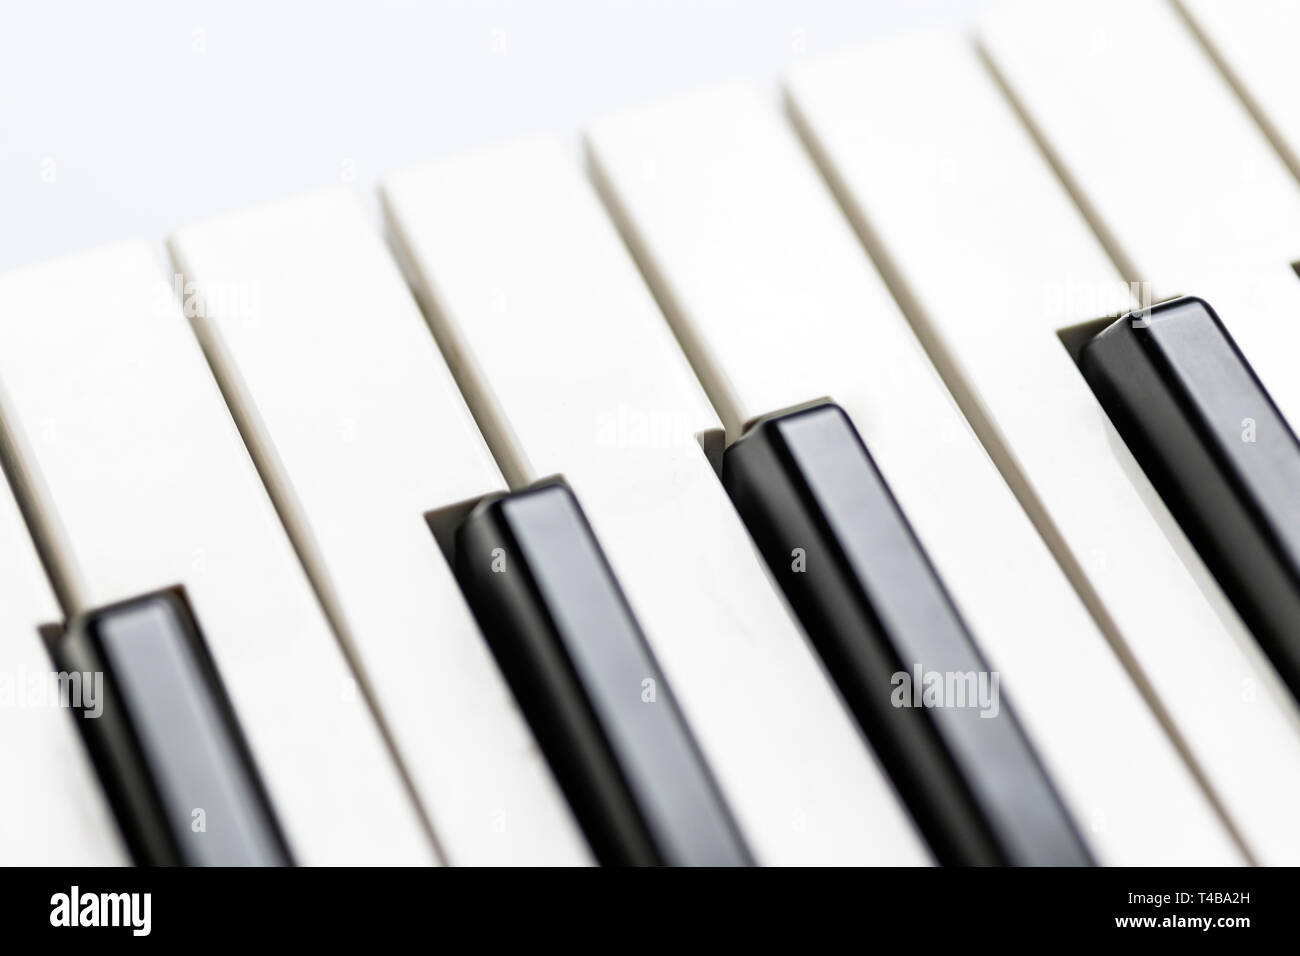 Piano keys close up view. Classical music instrument for playing or composing romantic music. Piano or synthesizer keyboard. - Stock Image